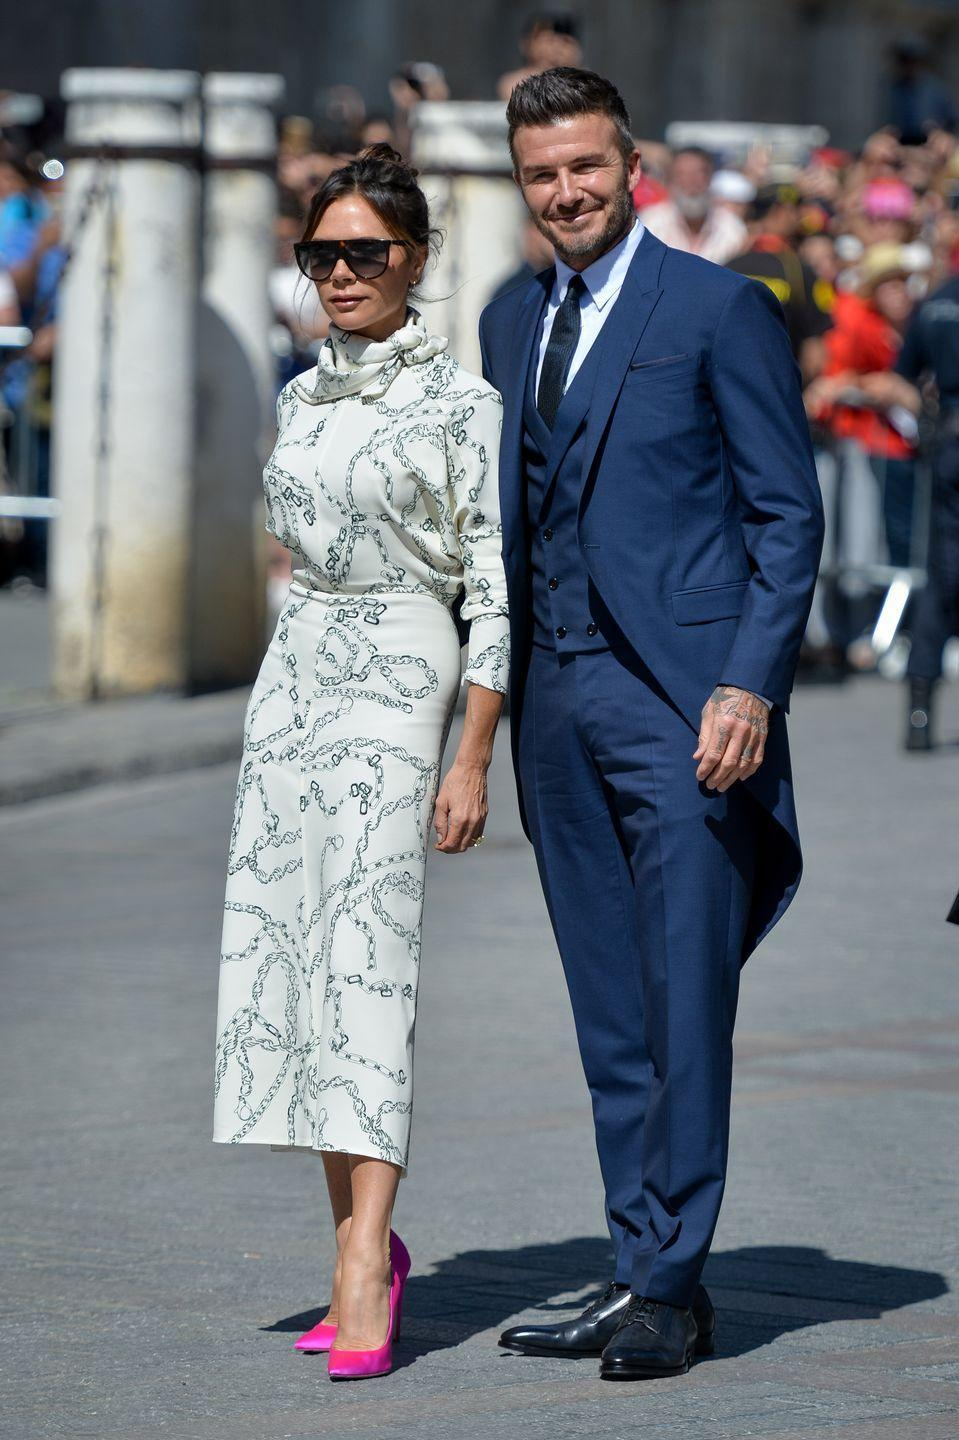 <p>Over the years, Victoria and David Beckham have proved that no other duo does a couple dressing quite as well. They always look brilliant, but especially so here at footballer Sergio Ramos' wedding to Pilar Rubio. These bright fuchsia heels are *chef's kiss*. </p>